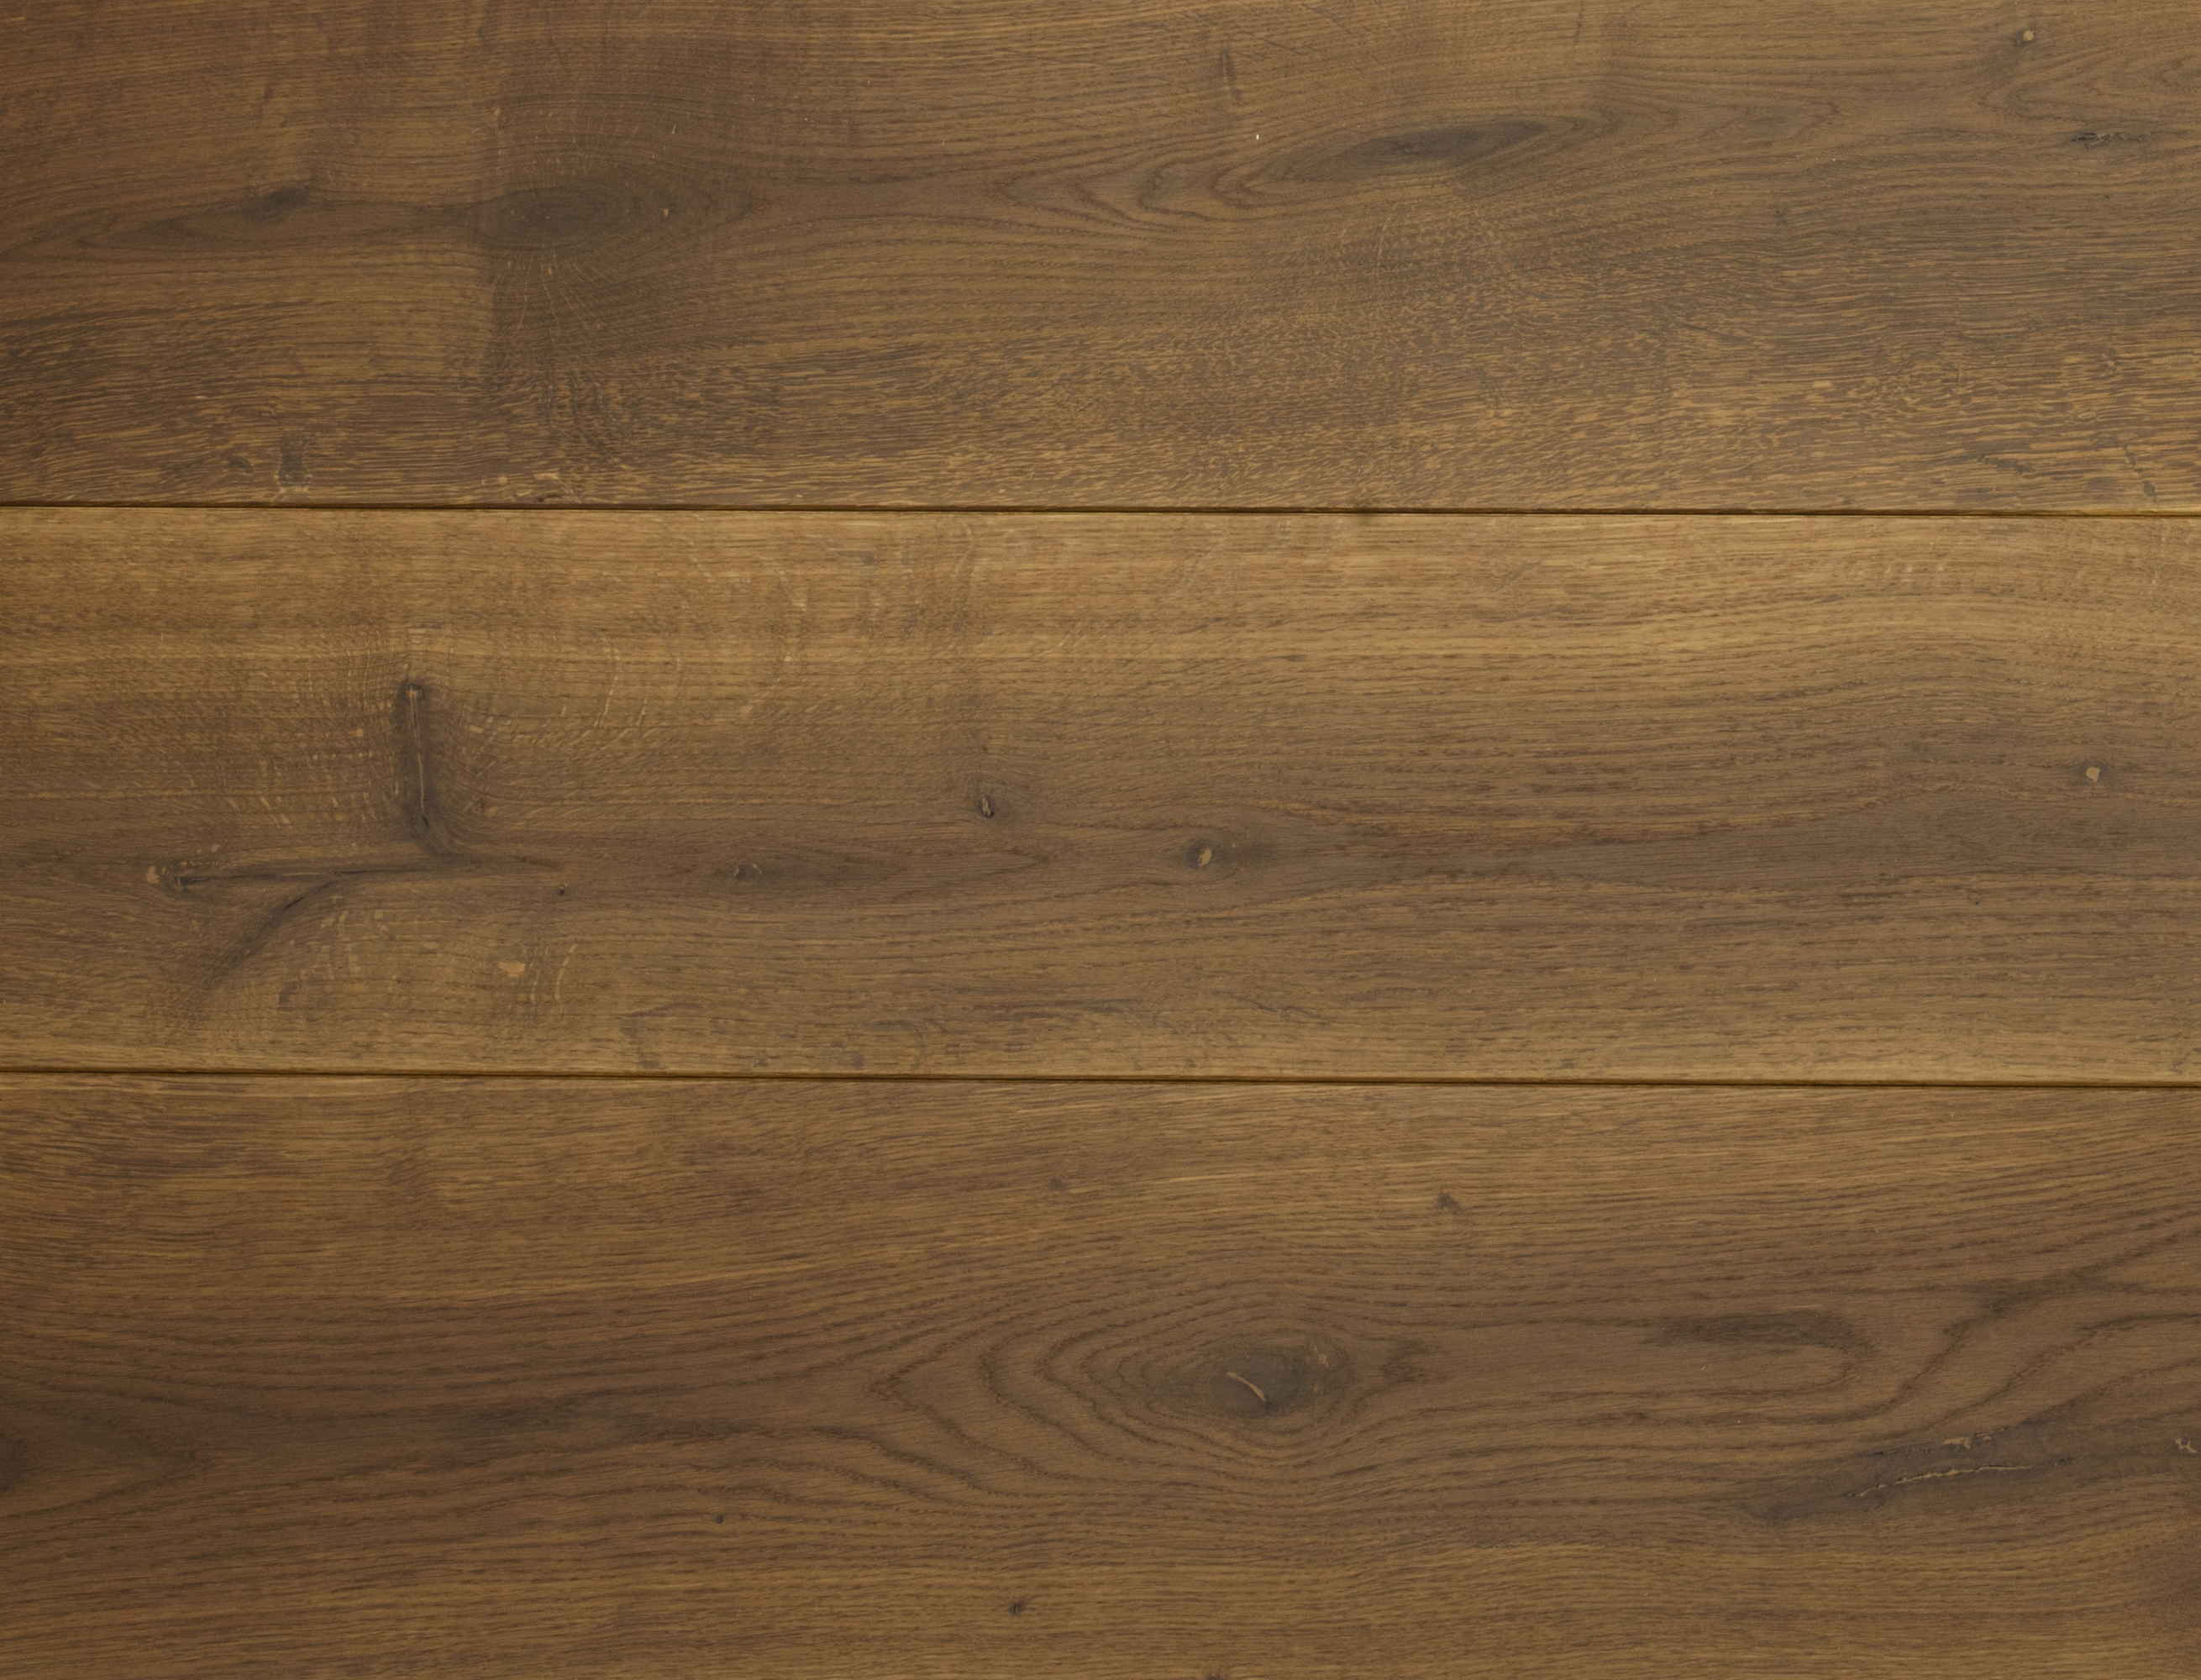 New Orleans Engineered Wood Flooring Uk Based